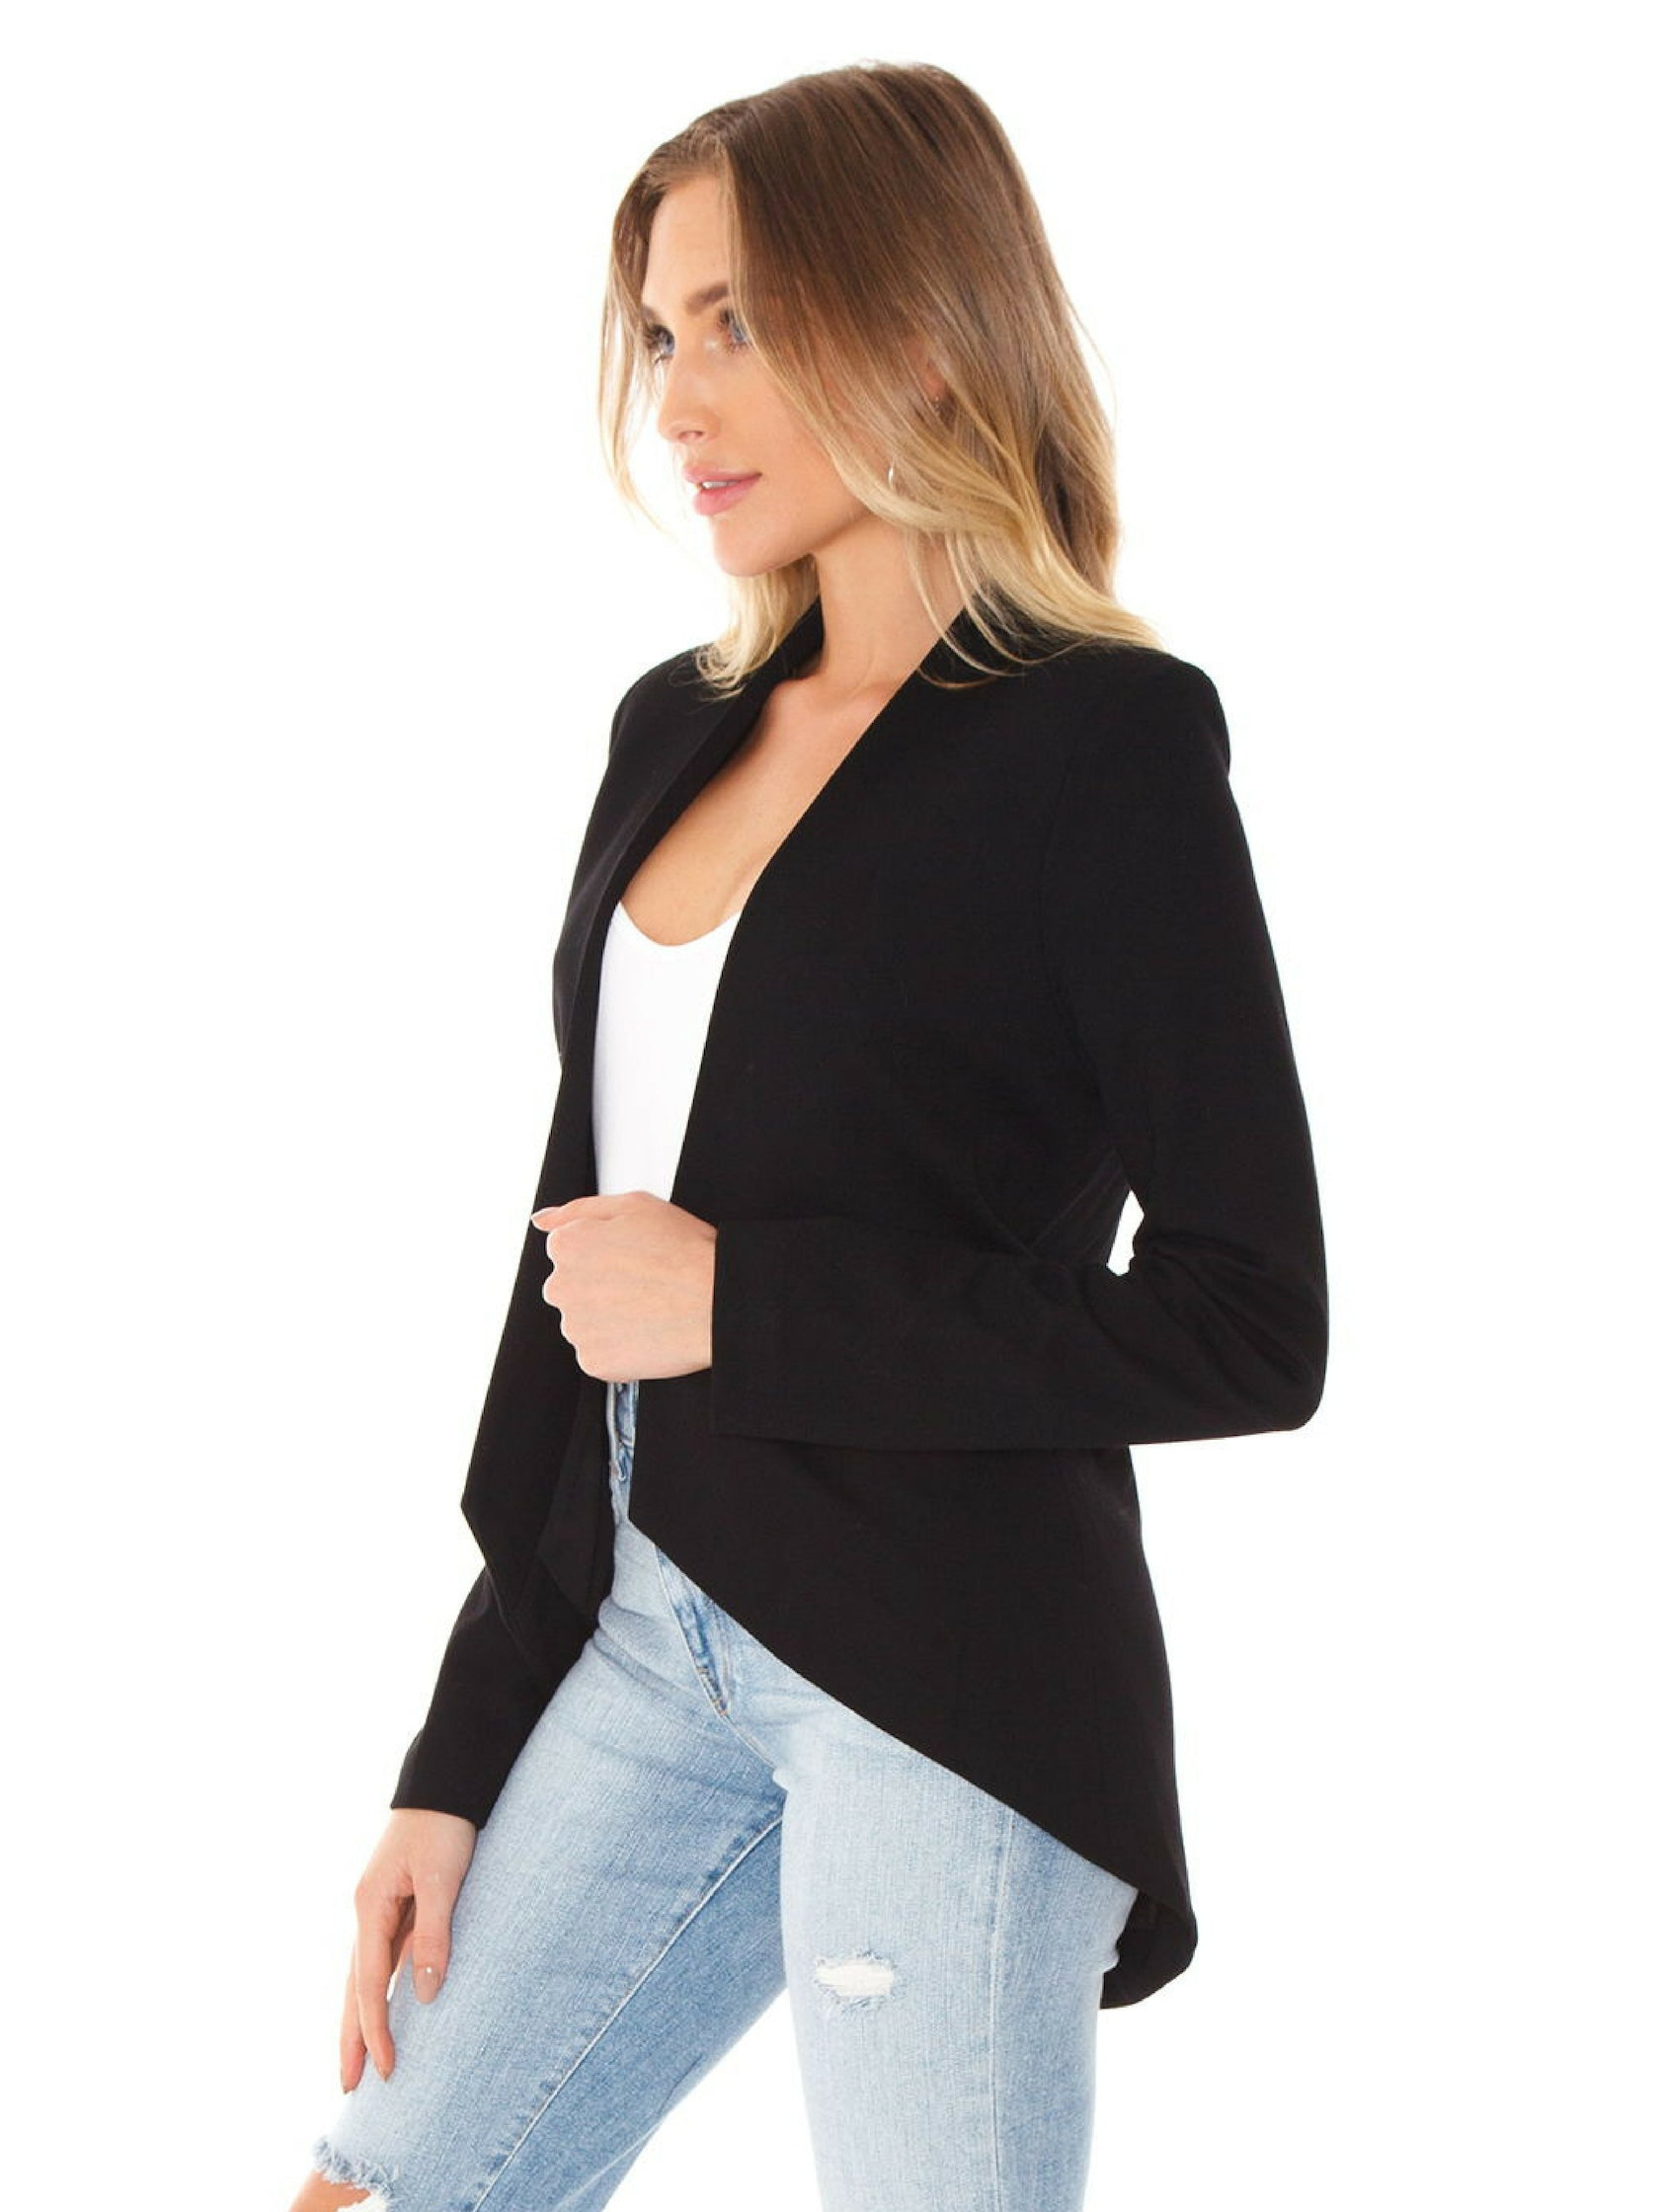 Women wearing a blazer rental from BLAQUE LABEL called Blazer